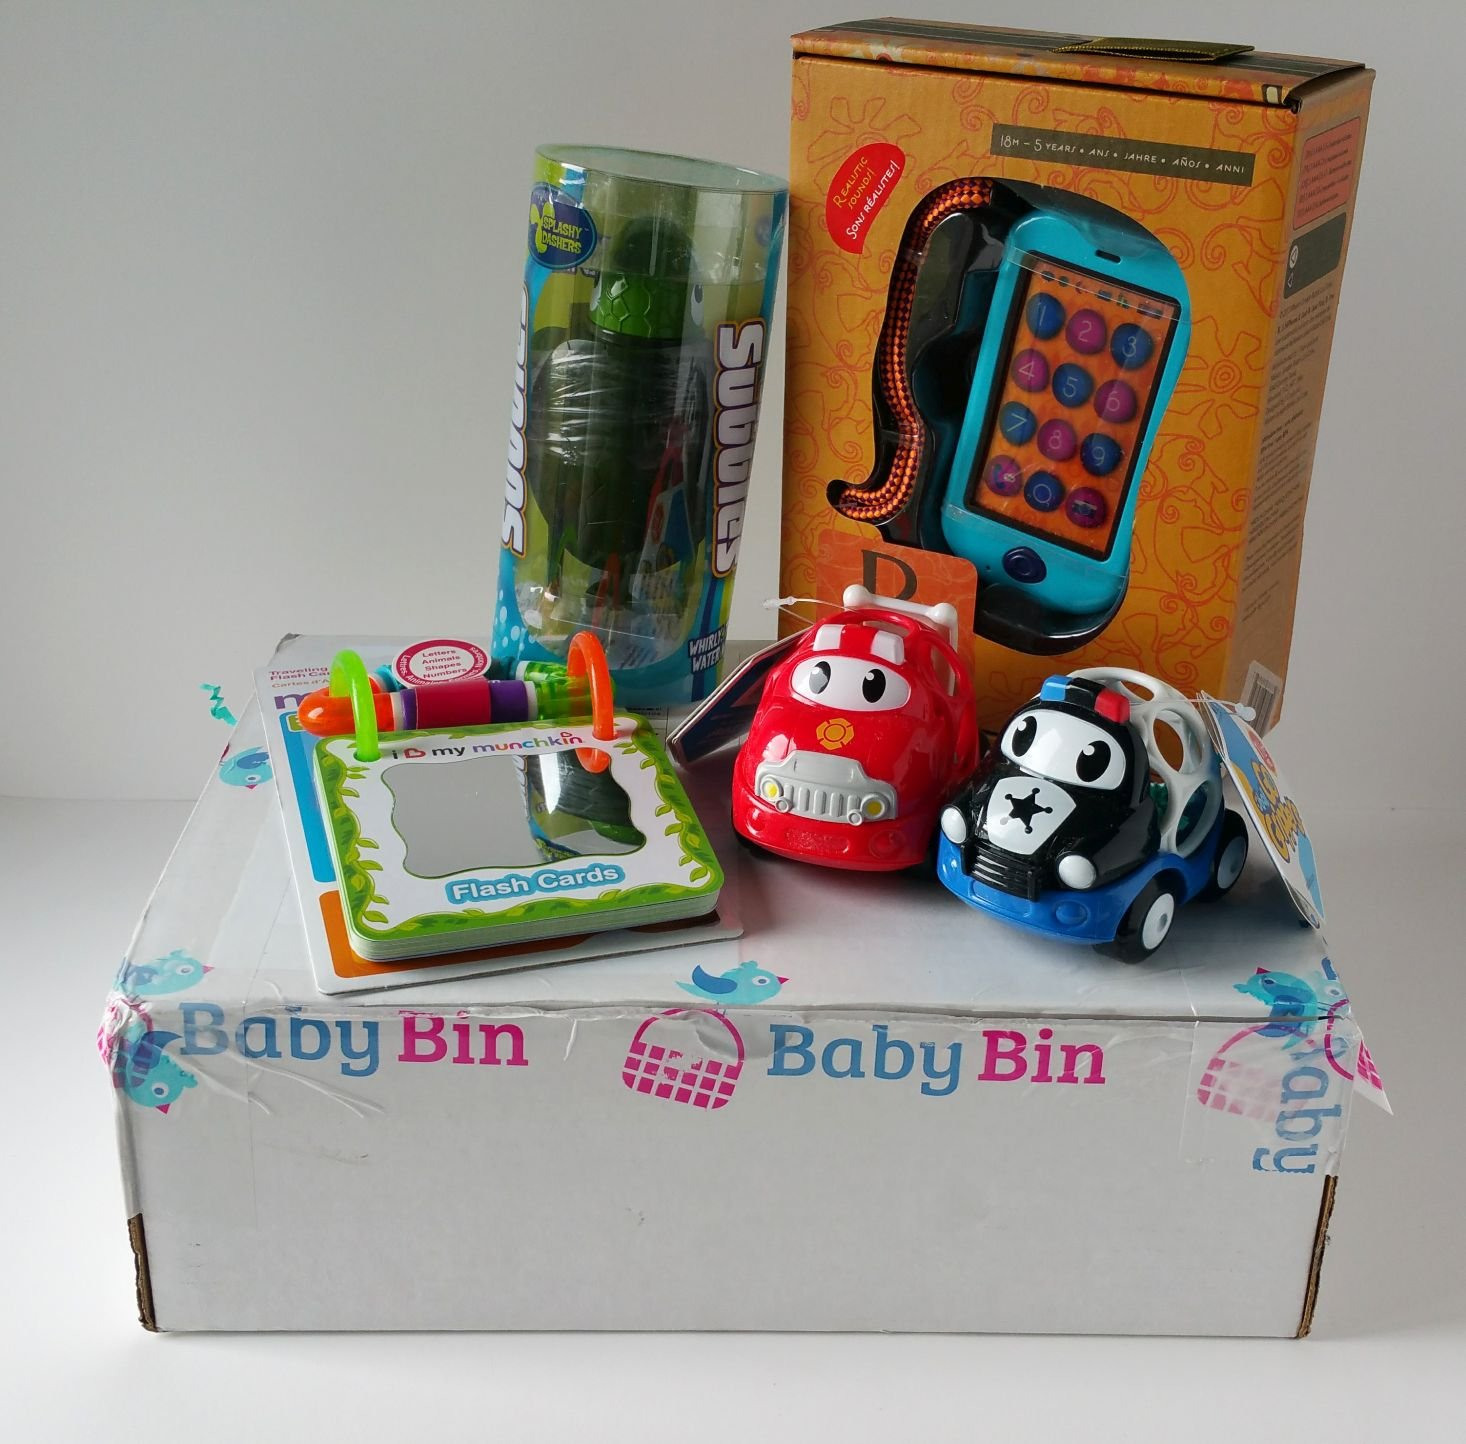 Baby-Bin-January-2017-review